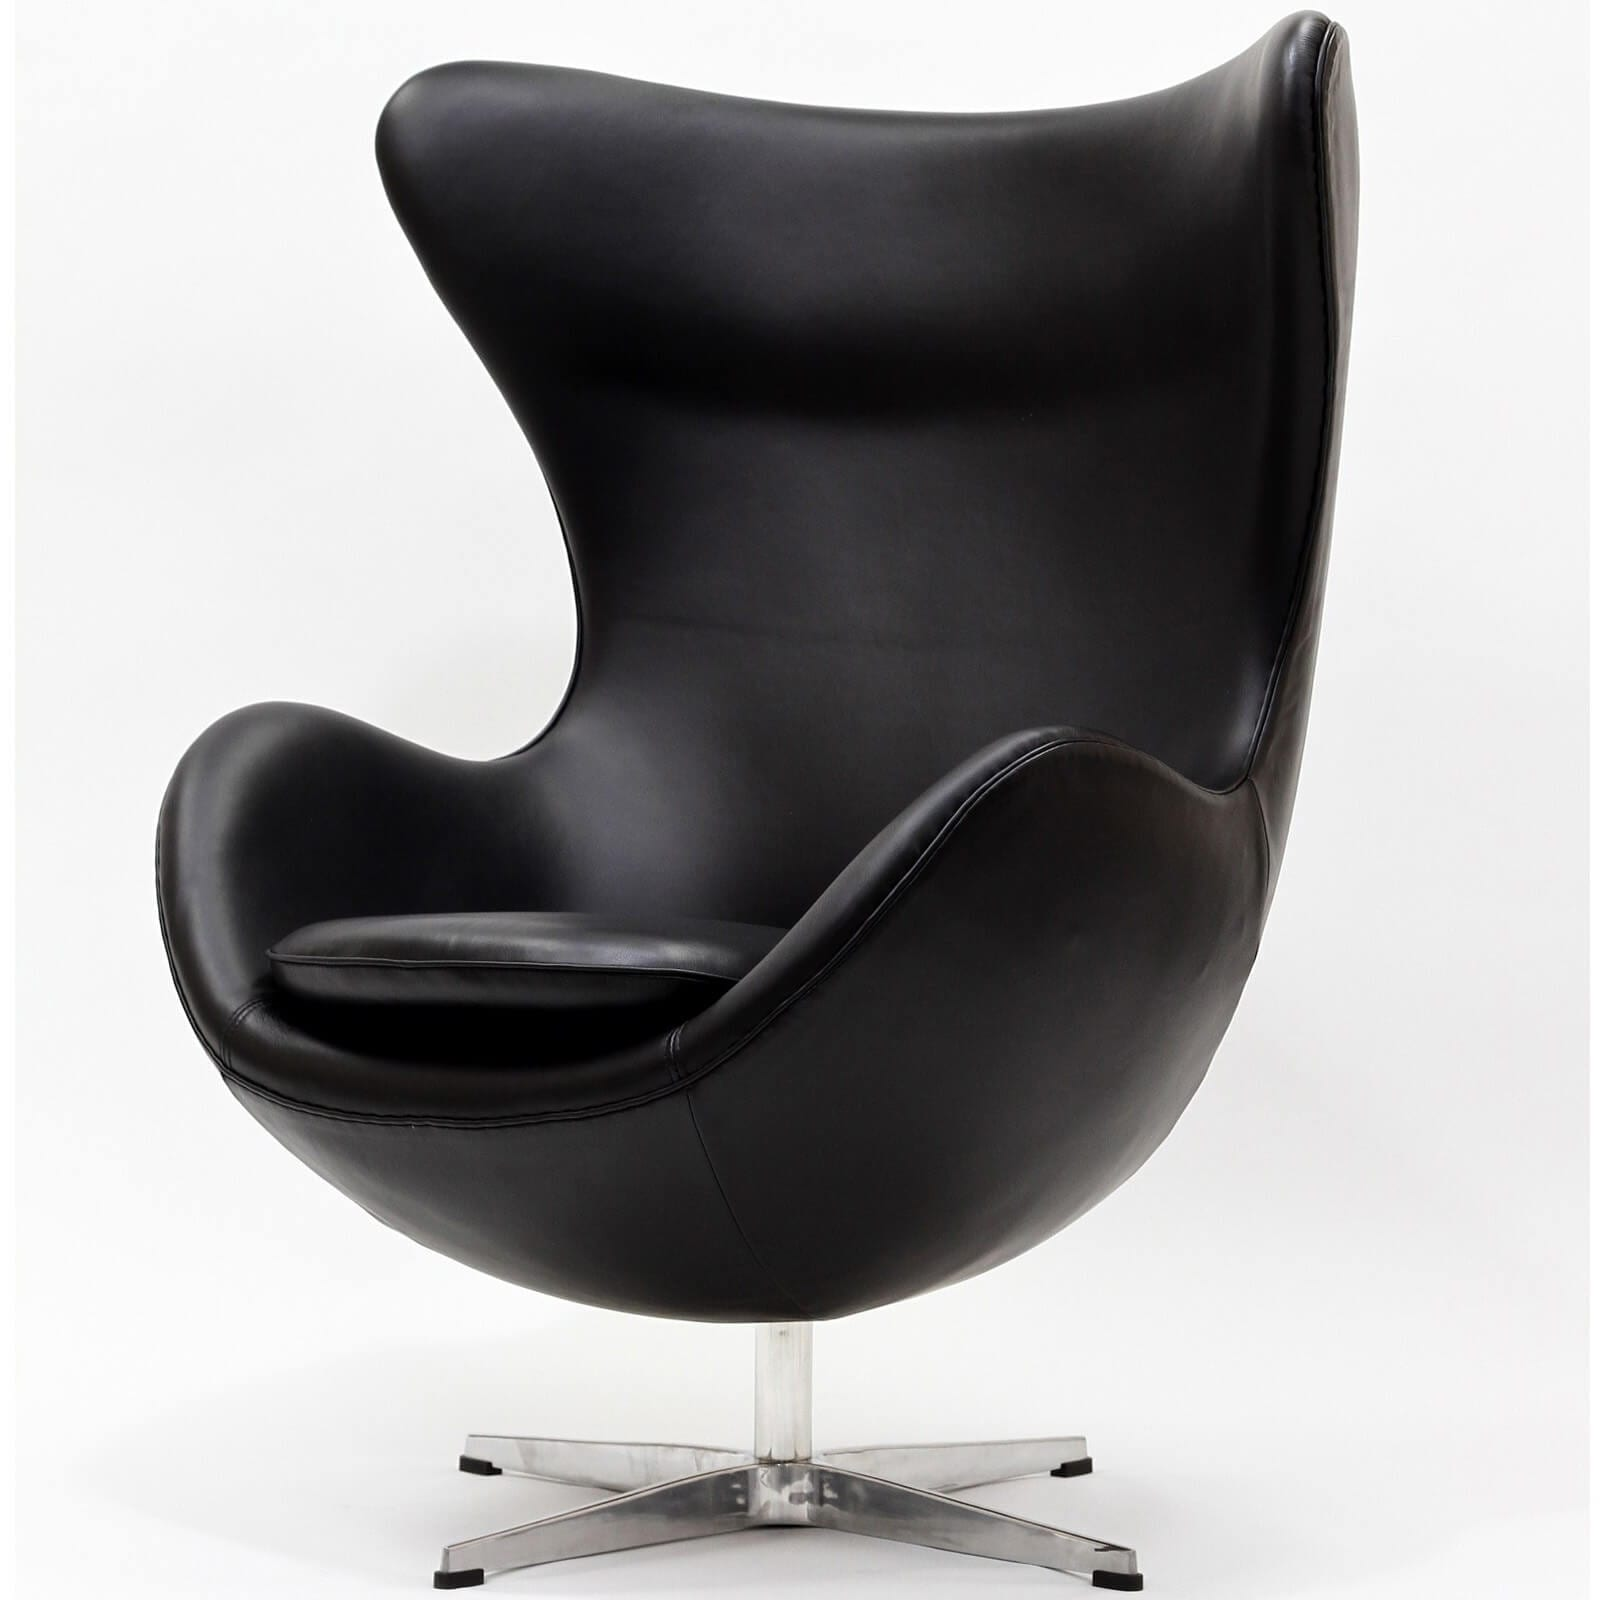 Arne jacobsen egg chair leather - Arne Jacobsen Egg Ch